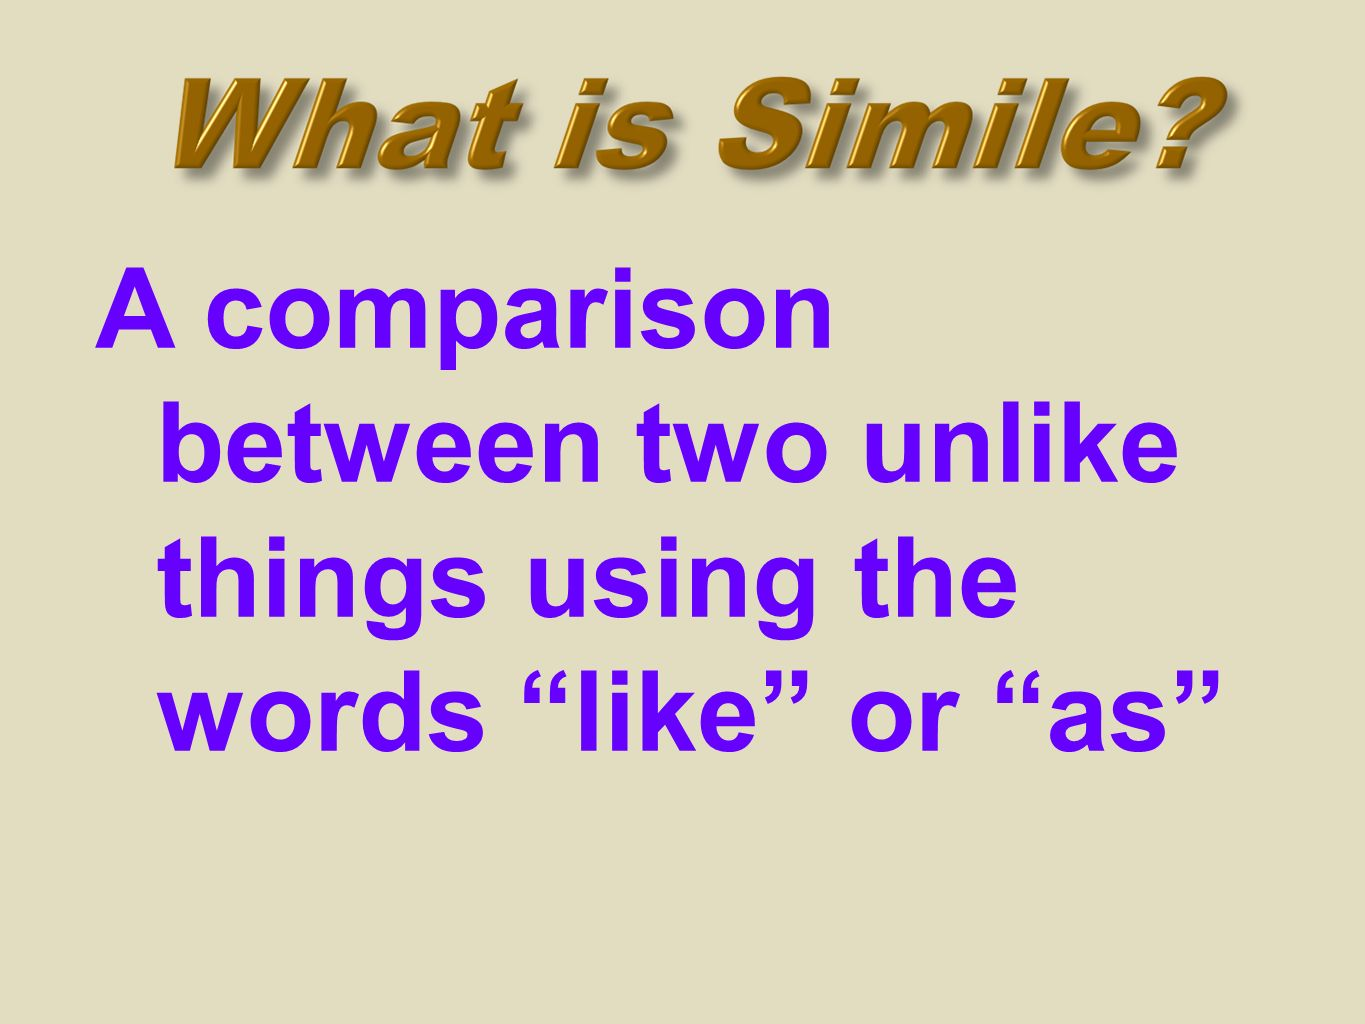 A comparison between two unlike things using the words like or as